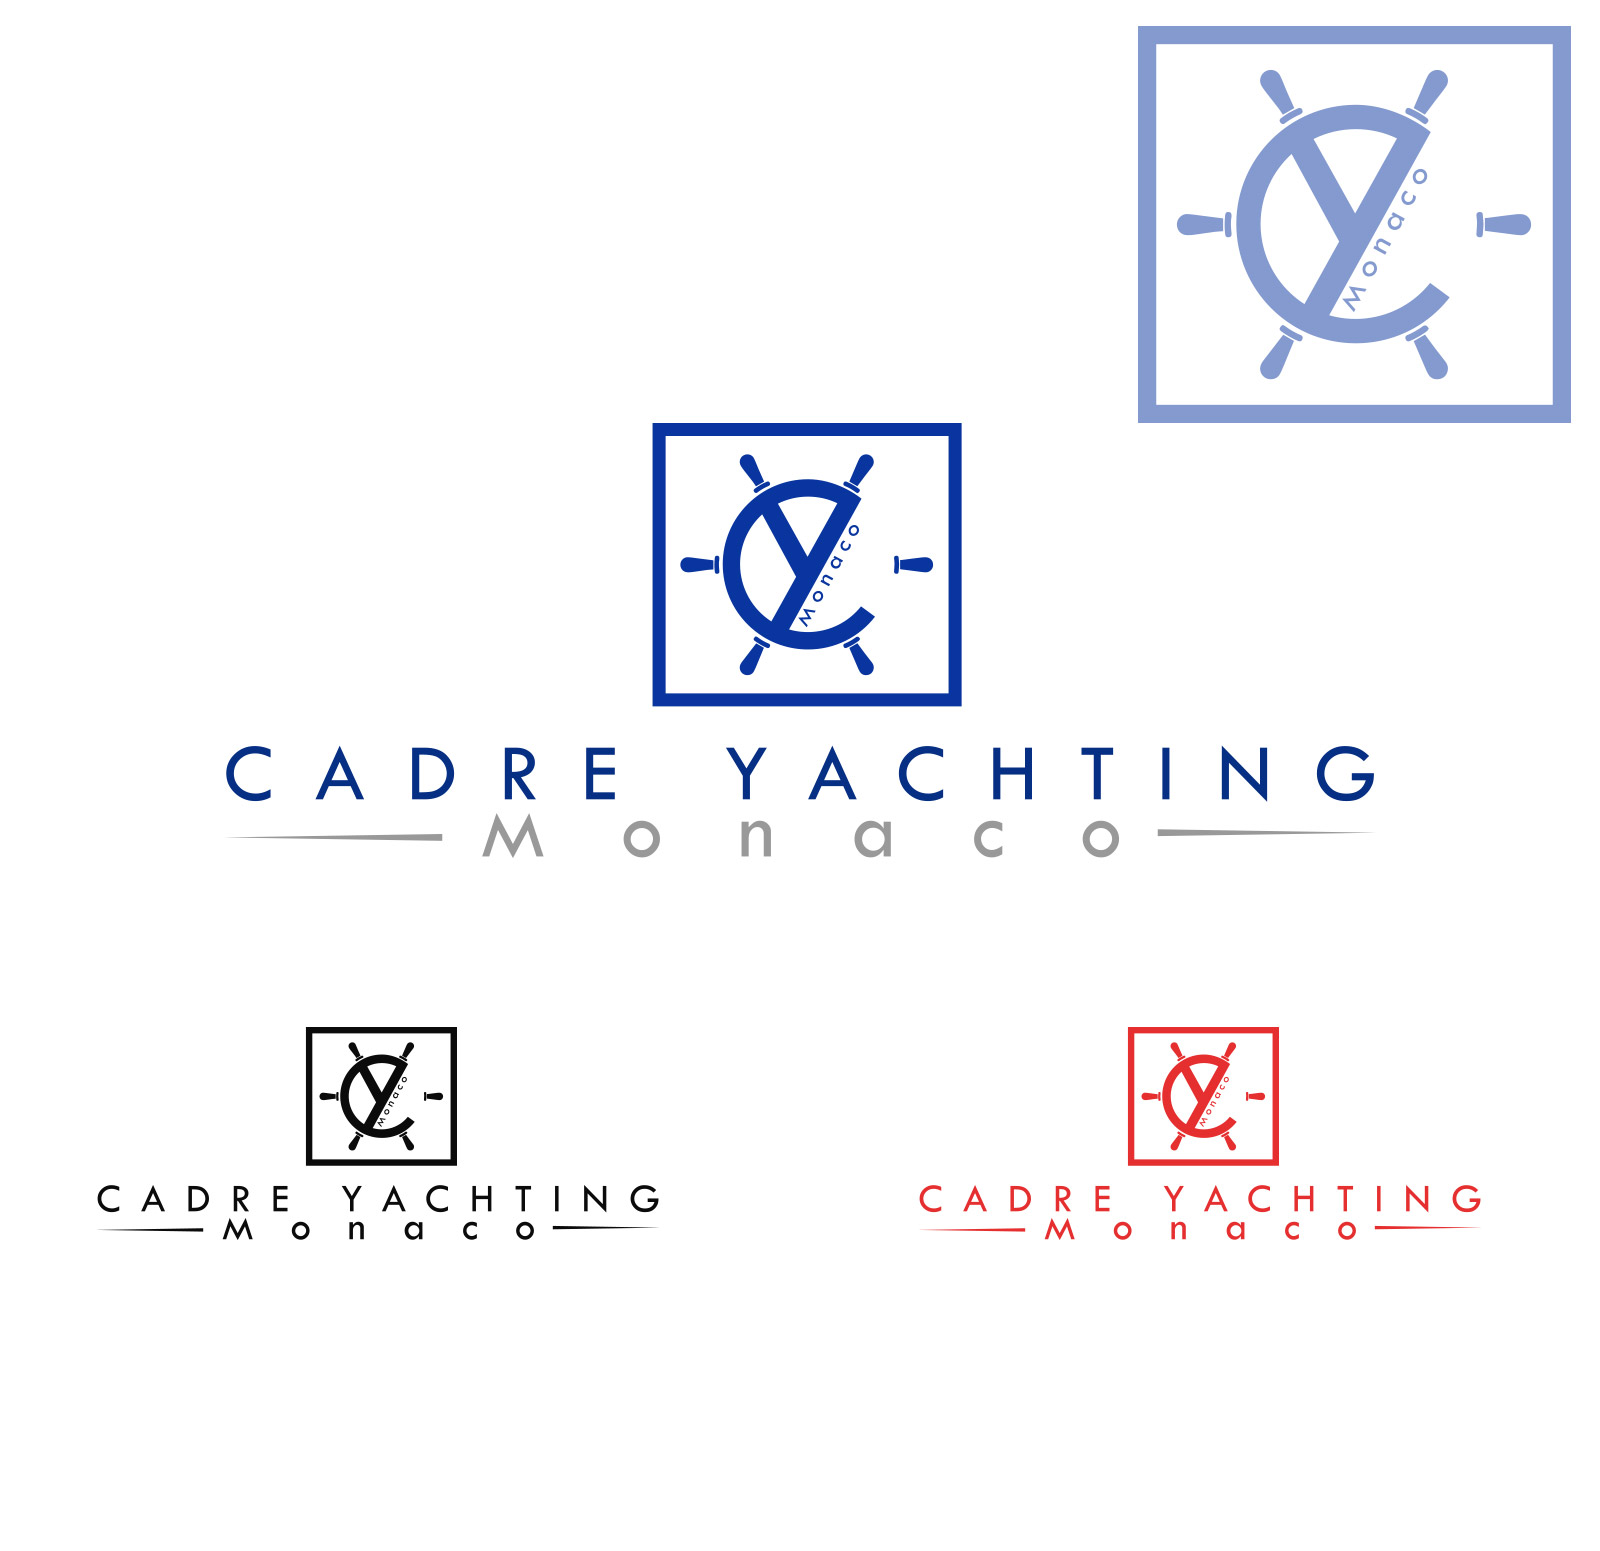 Logo Design by olii - Entry No. 369 in the Logo Design Contest New Logo Design for Cadre Yachting Monaco.